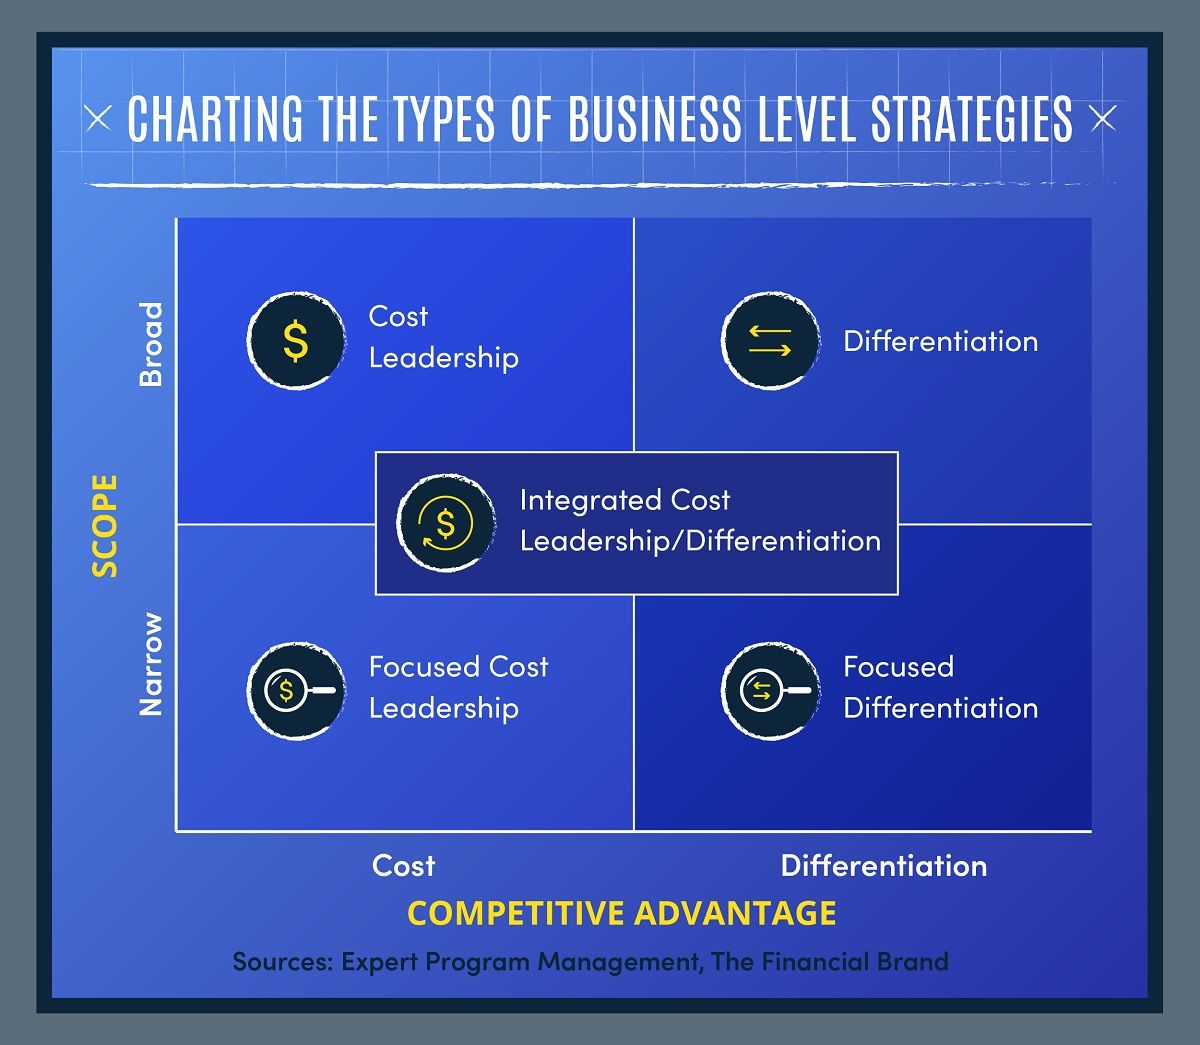 Charting the types of business level strategy